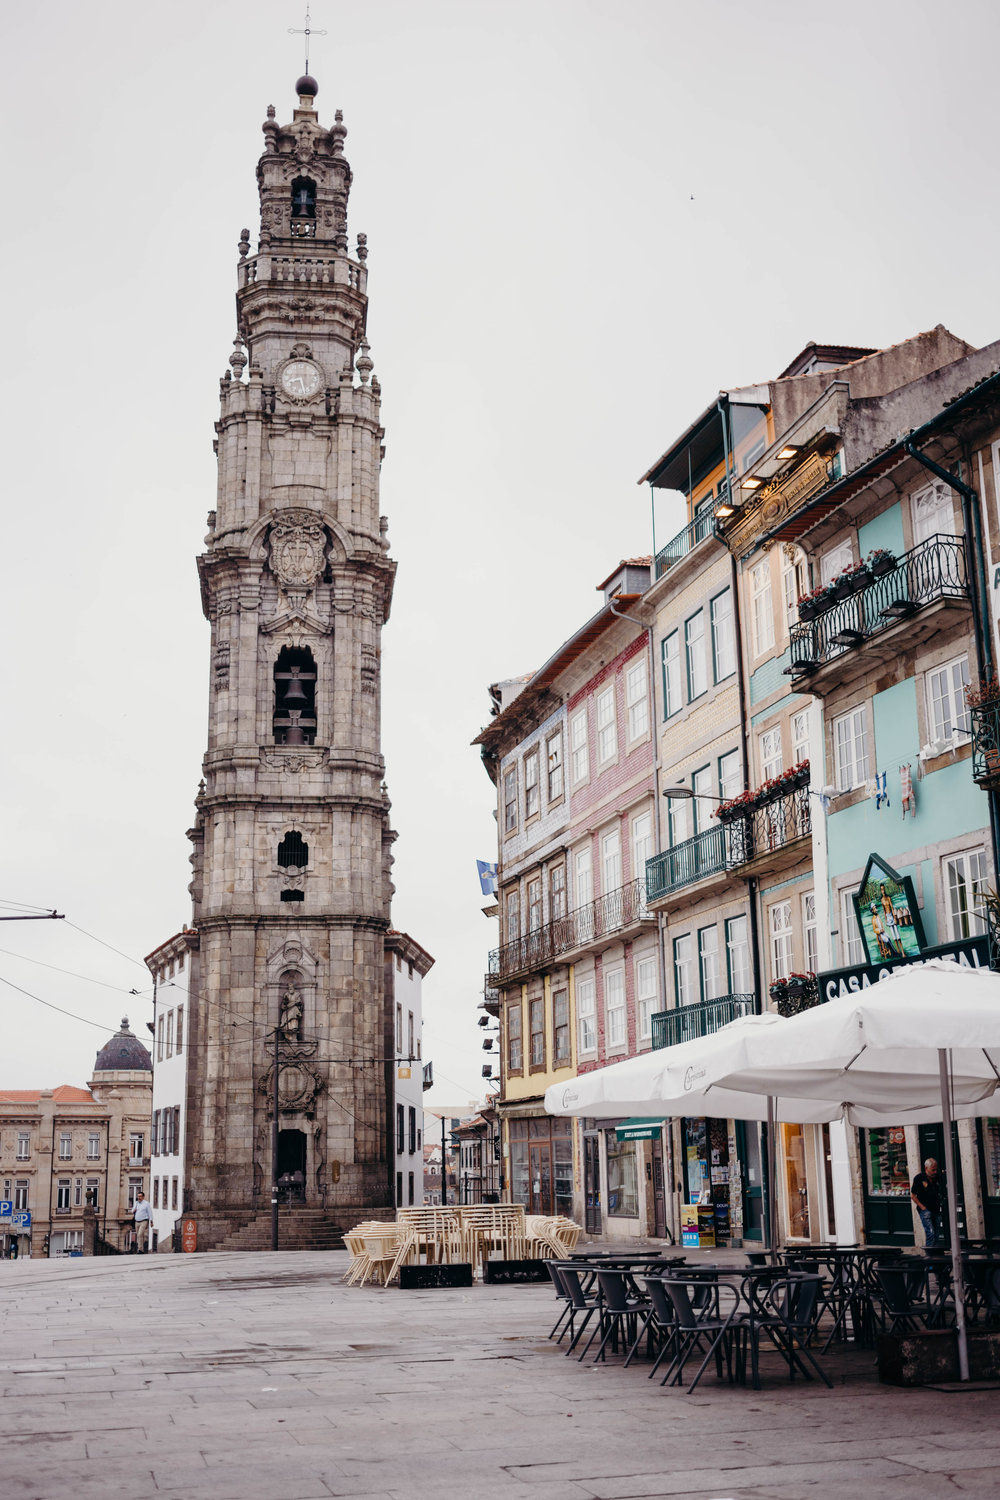 Our Portugal Travel Diary: Lisbon, Porto, and More | On the Street Where We Live (aretherelilactrees.com)  Clerigos Church, Clerigos Tower